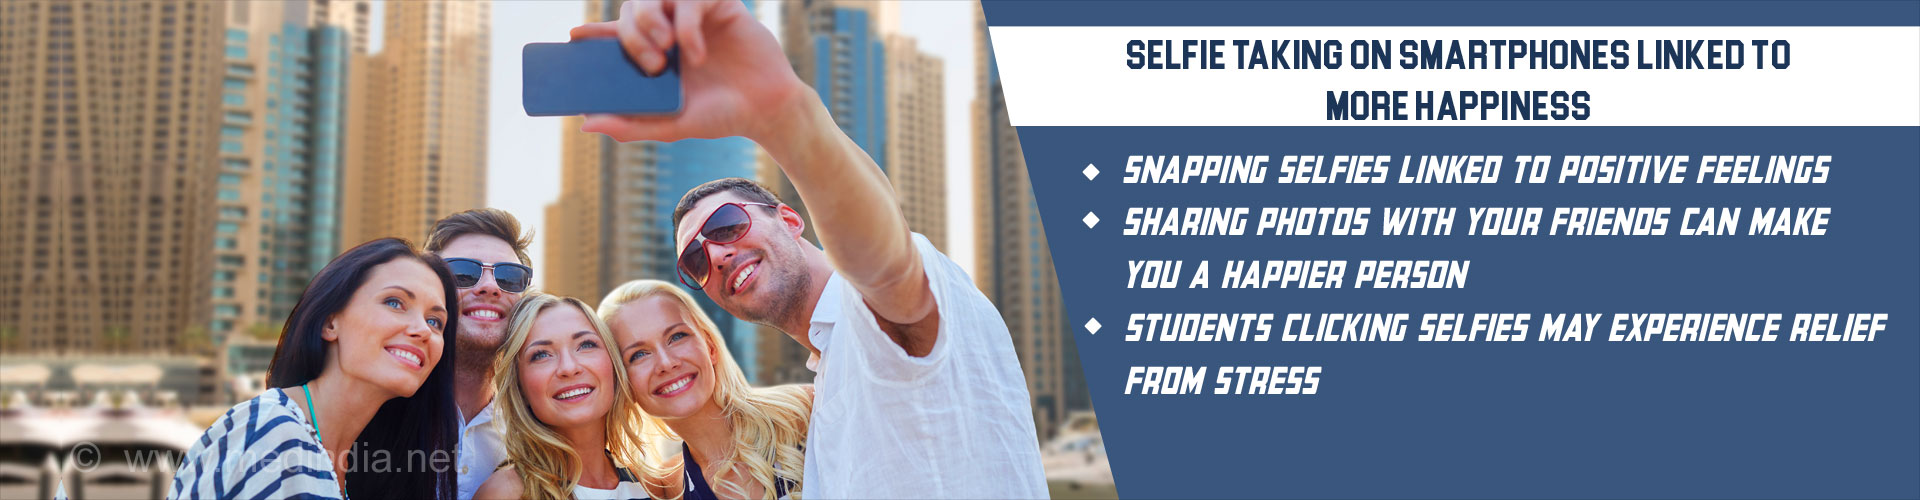 Selfie-taking on Smartphones Making People Happier